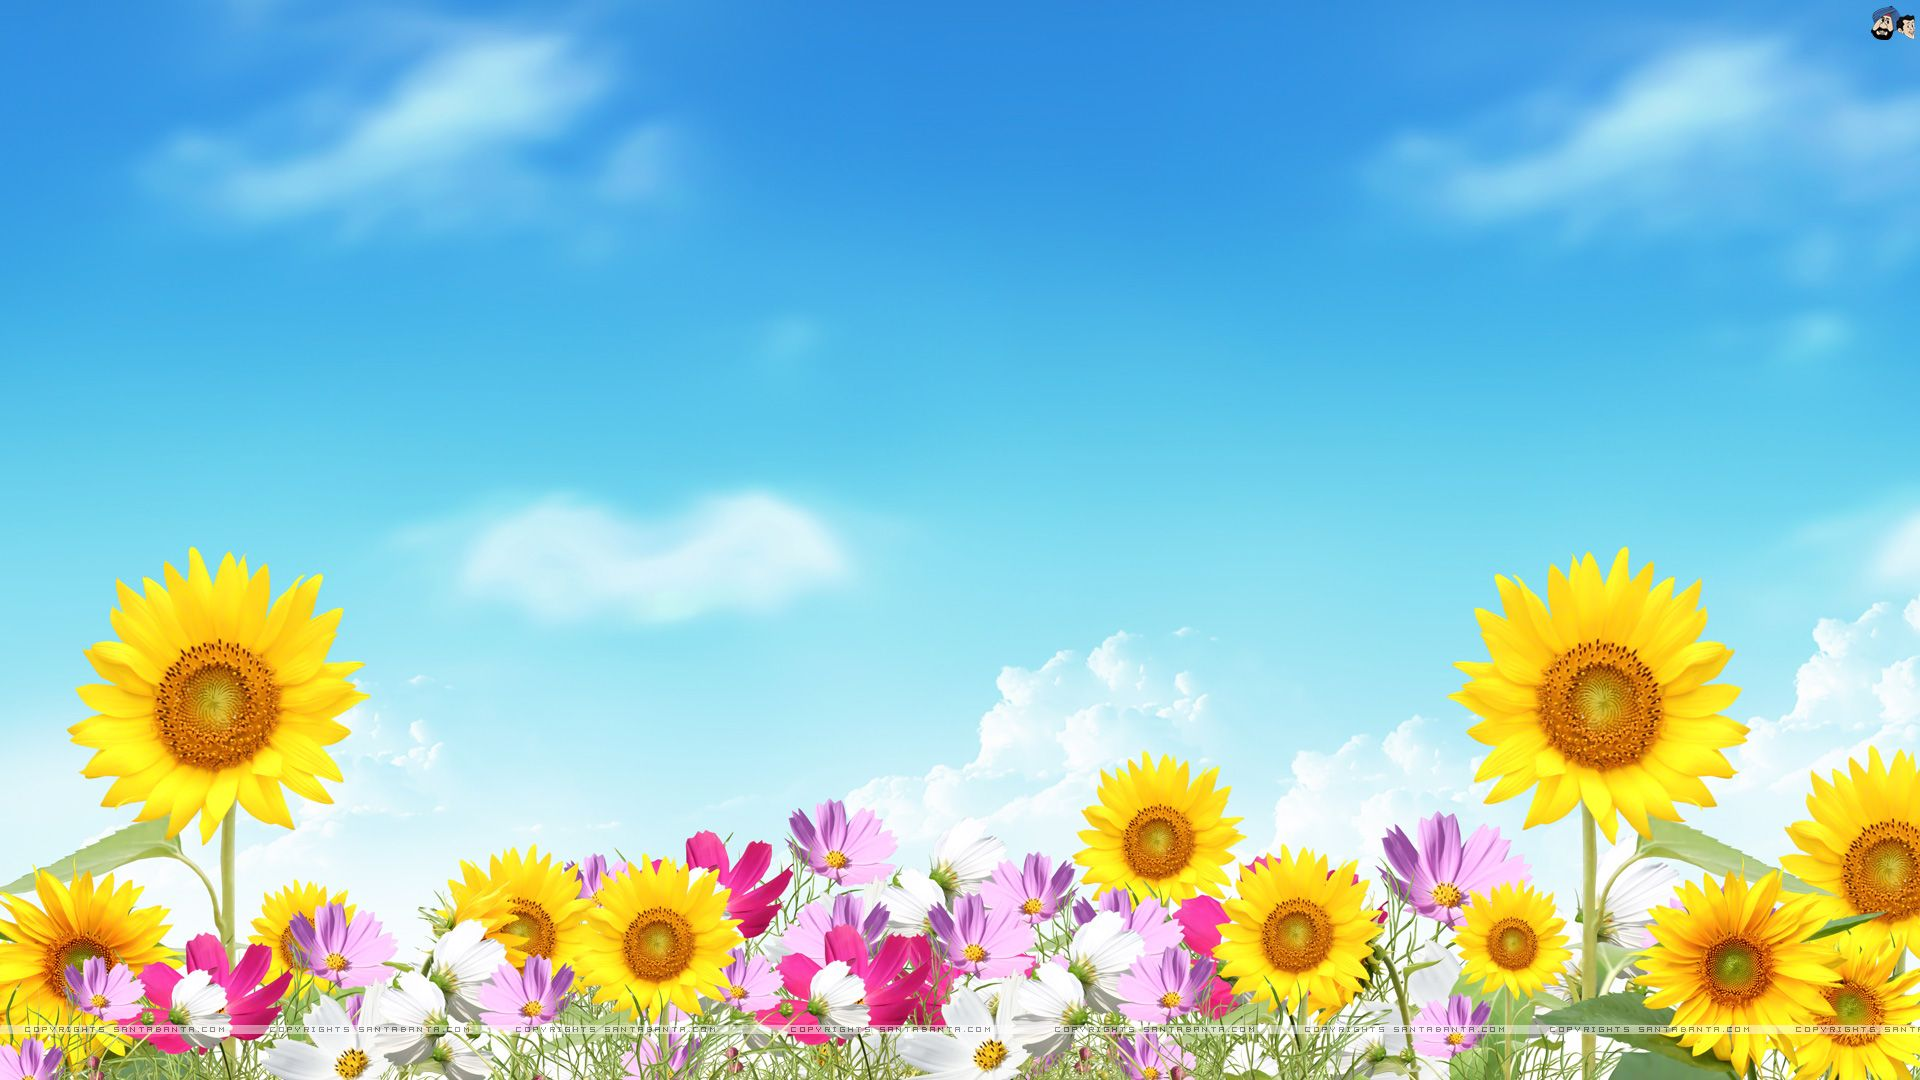 Image for Summer Flowers Computer Backgrounds Backgrounds 1920x1080